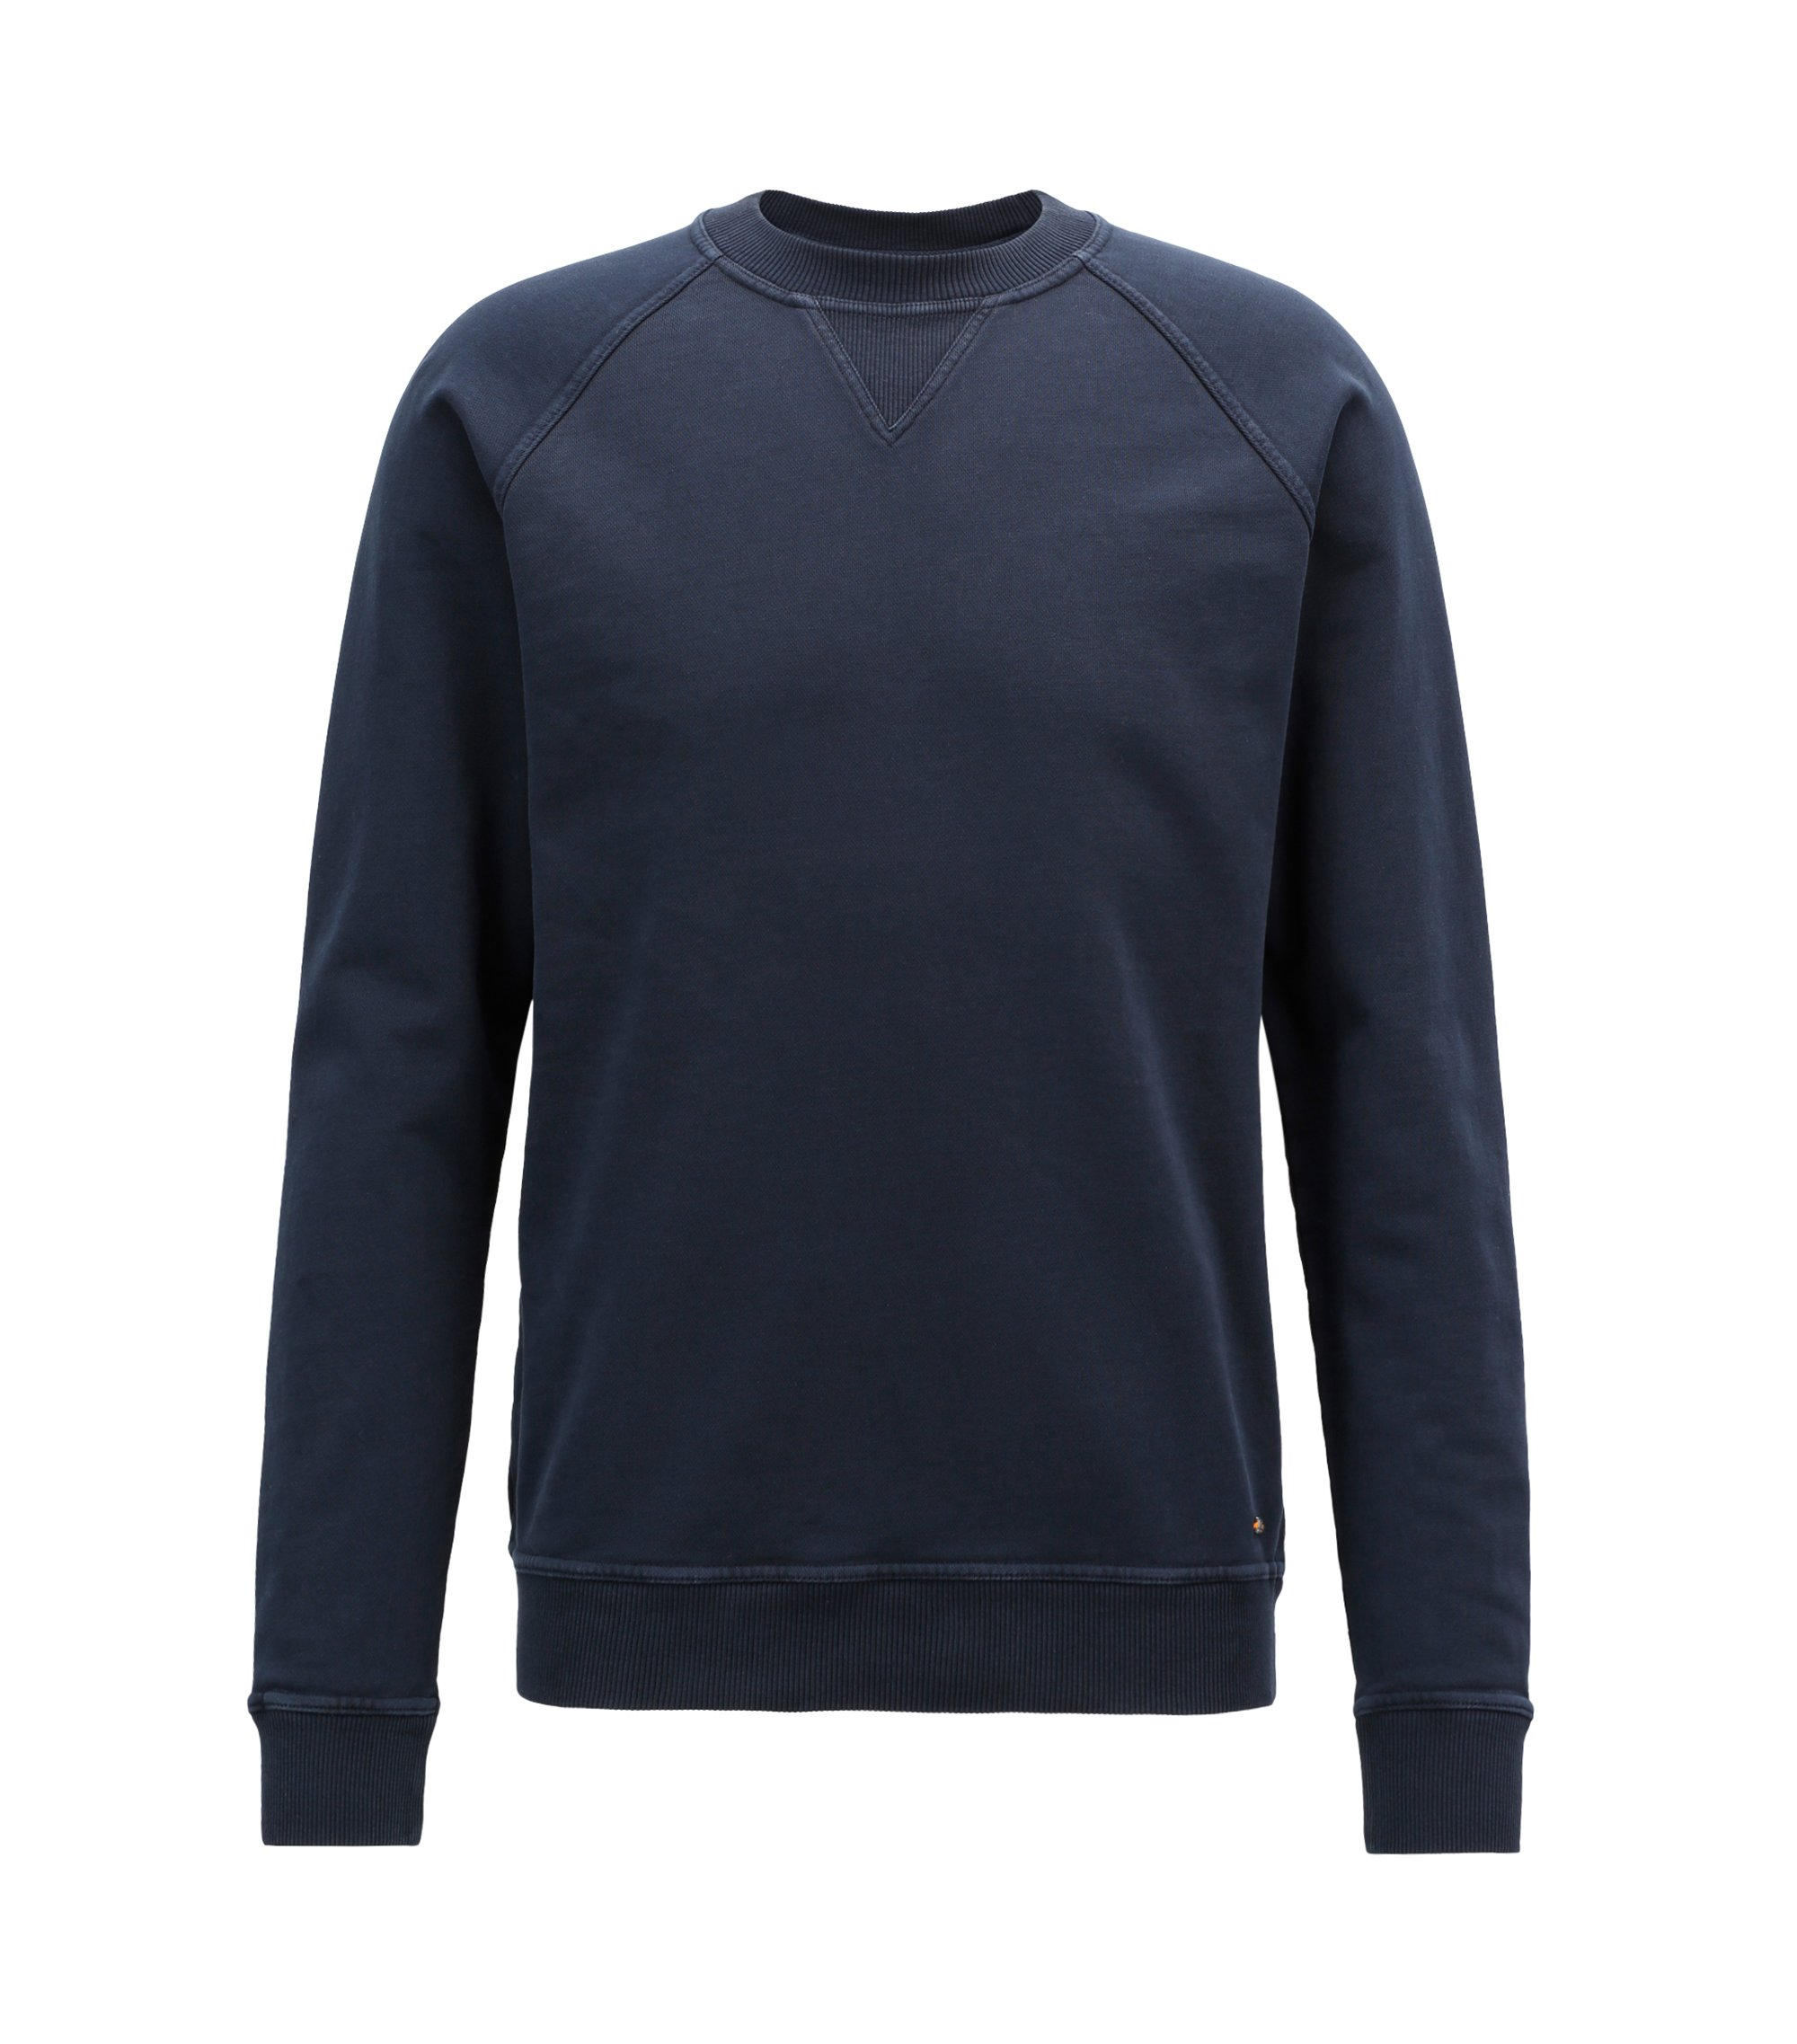 Crew-neck sweatshirt in recot²® French terry, Dark Blue